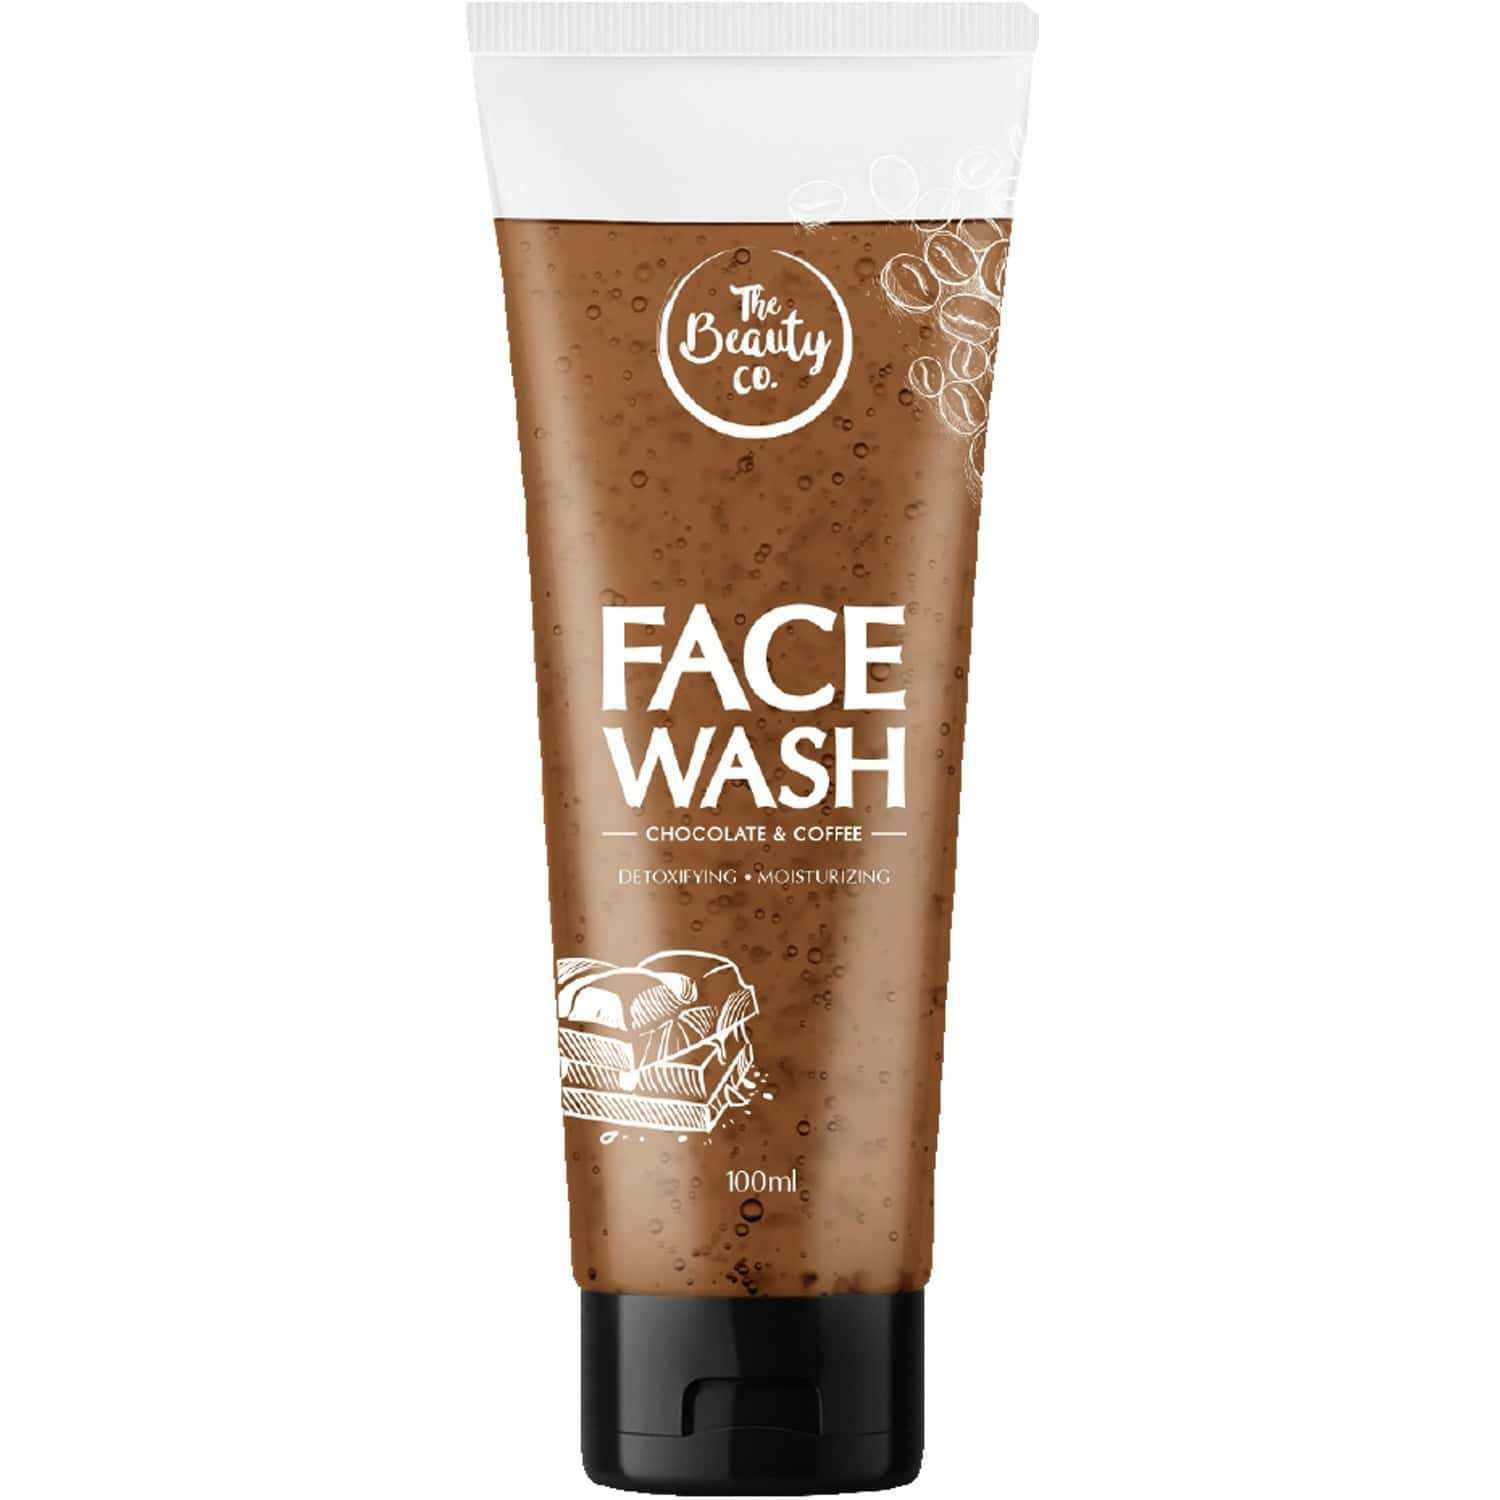 The Beauty Co. Chocolate And Coffee Face Wash, 100ml